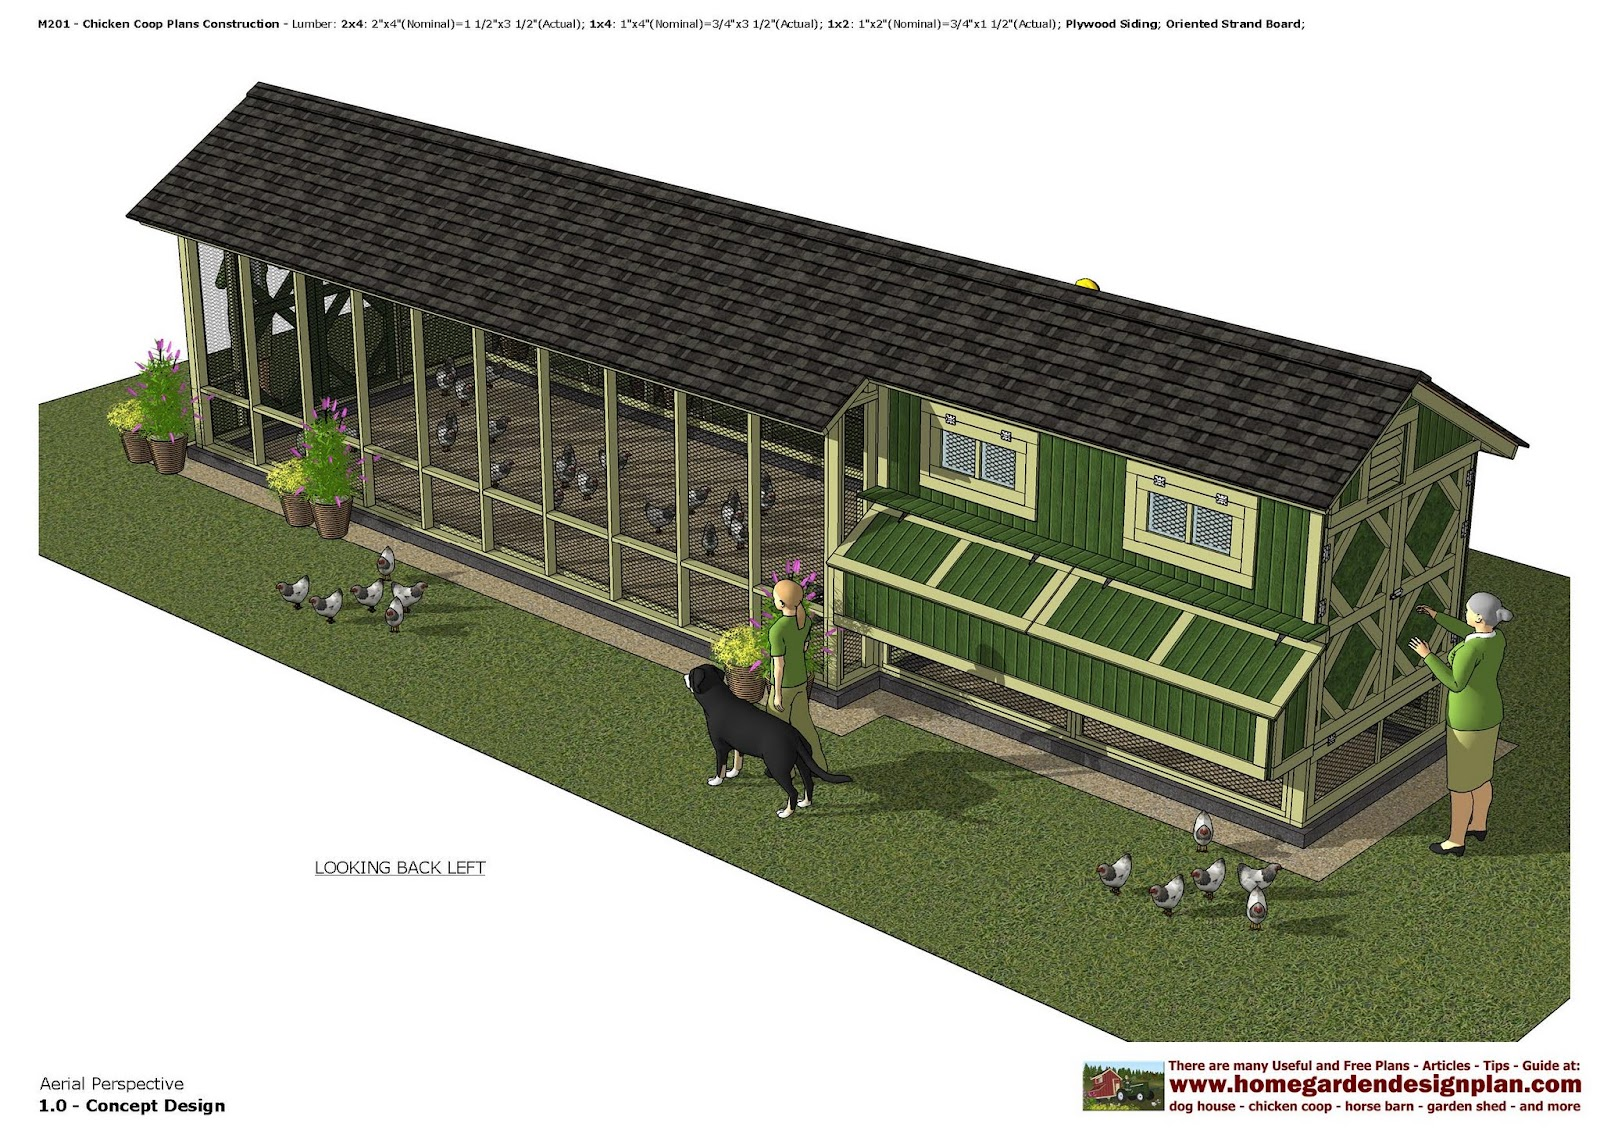 Home garden plans m201 chicken coop plans construction for How to build a chicken hutch